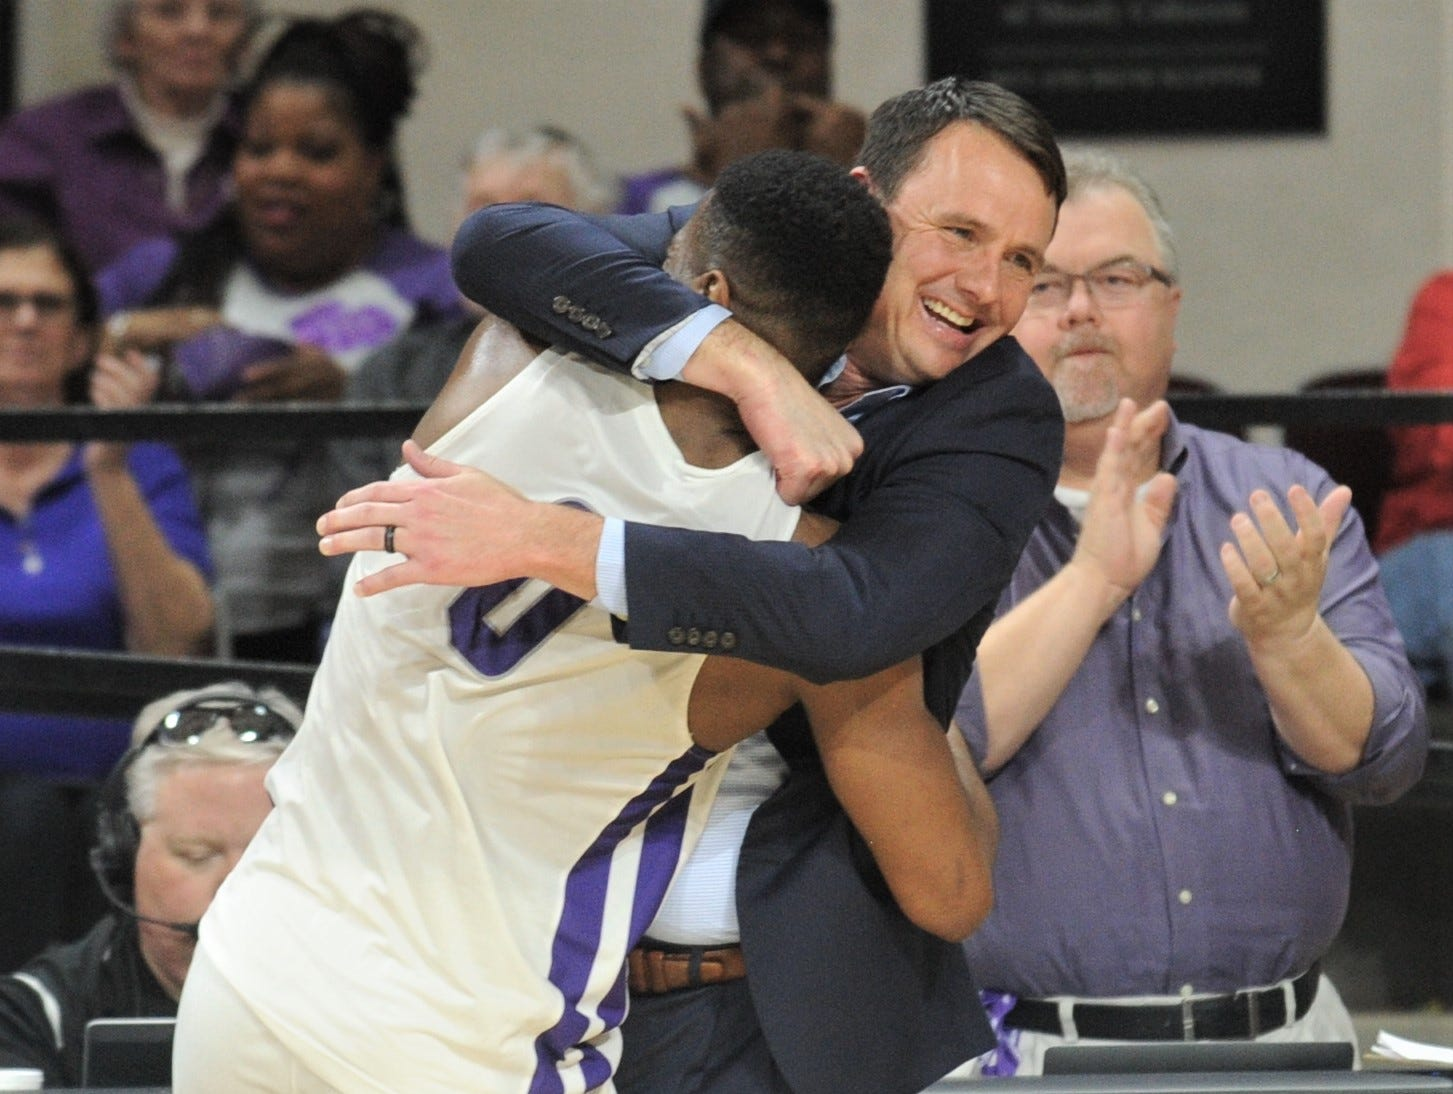 ACU coach Joe Golding, right, gives senior Jaylen Franklin a hug after Franklin leaves the court in his final game at Moody Coliseum. He scored a game-high 19 points as ACU beat Incarnate Word 81-51 in the Southland Conference game Saturday, March 9, 2019, at Moody Coliseum.